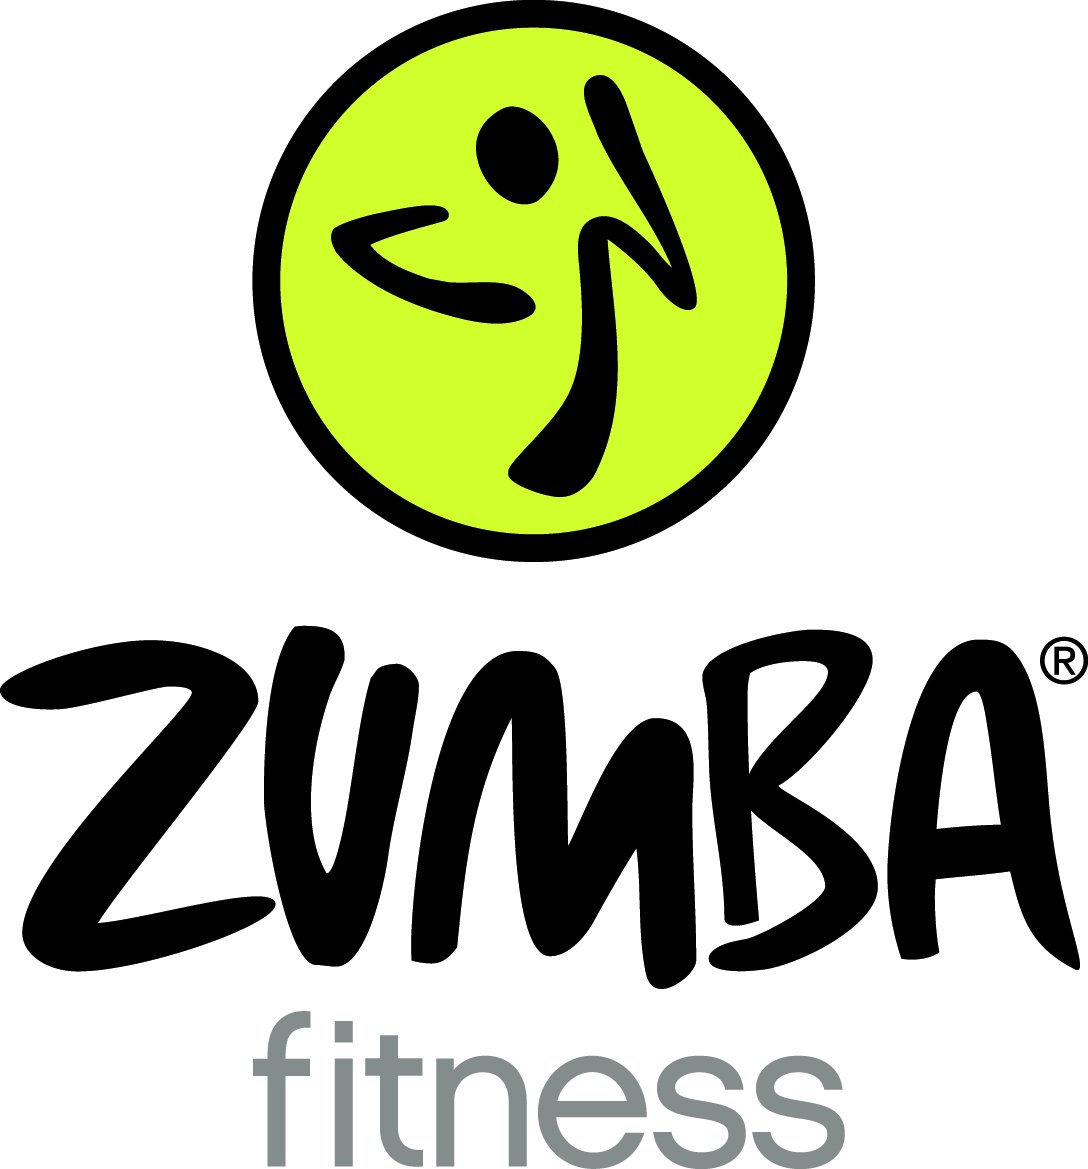 Zumba Fitness® - Pack Fitness con Mancuernas: Amazon.es: Deportes y aire libre